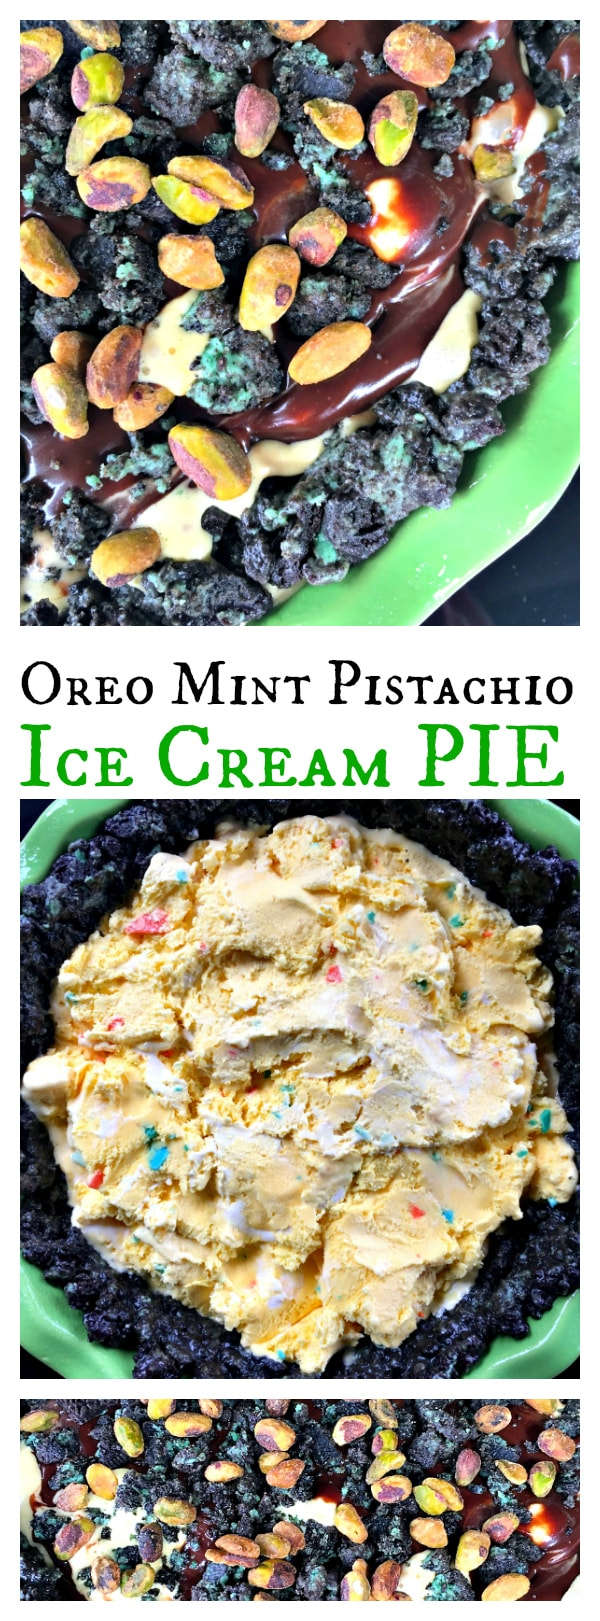 Oreo Mint Pistachio Ice Cream Pie for Game Day, St. Patrick's Day, or any fun party!